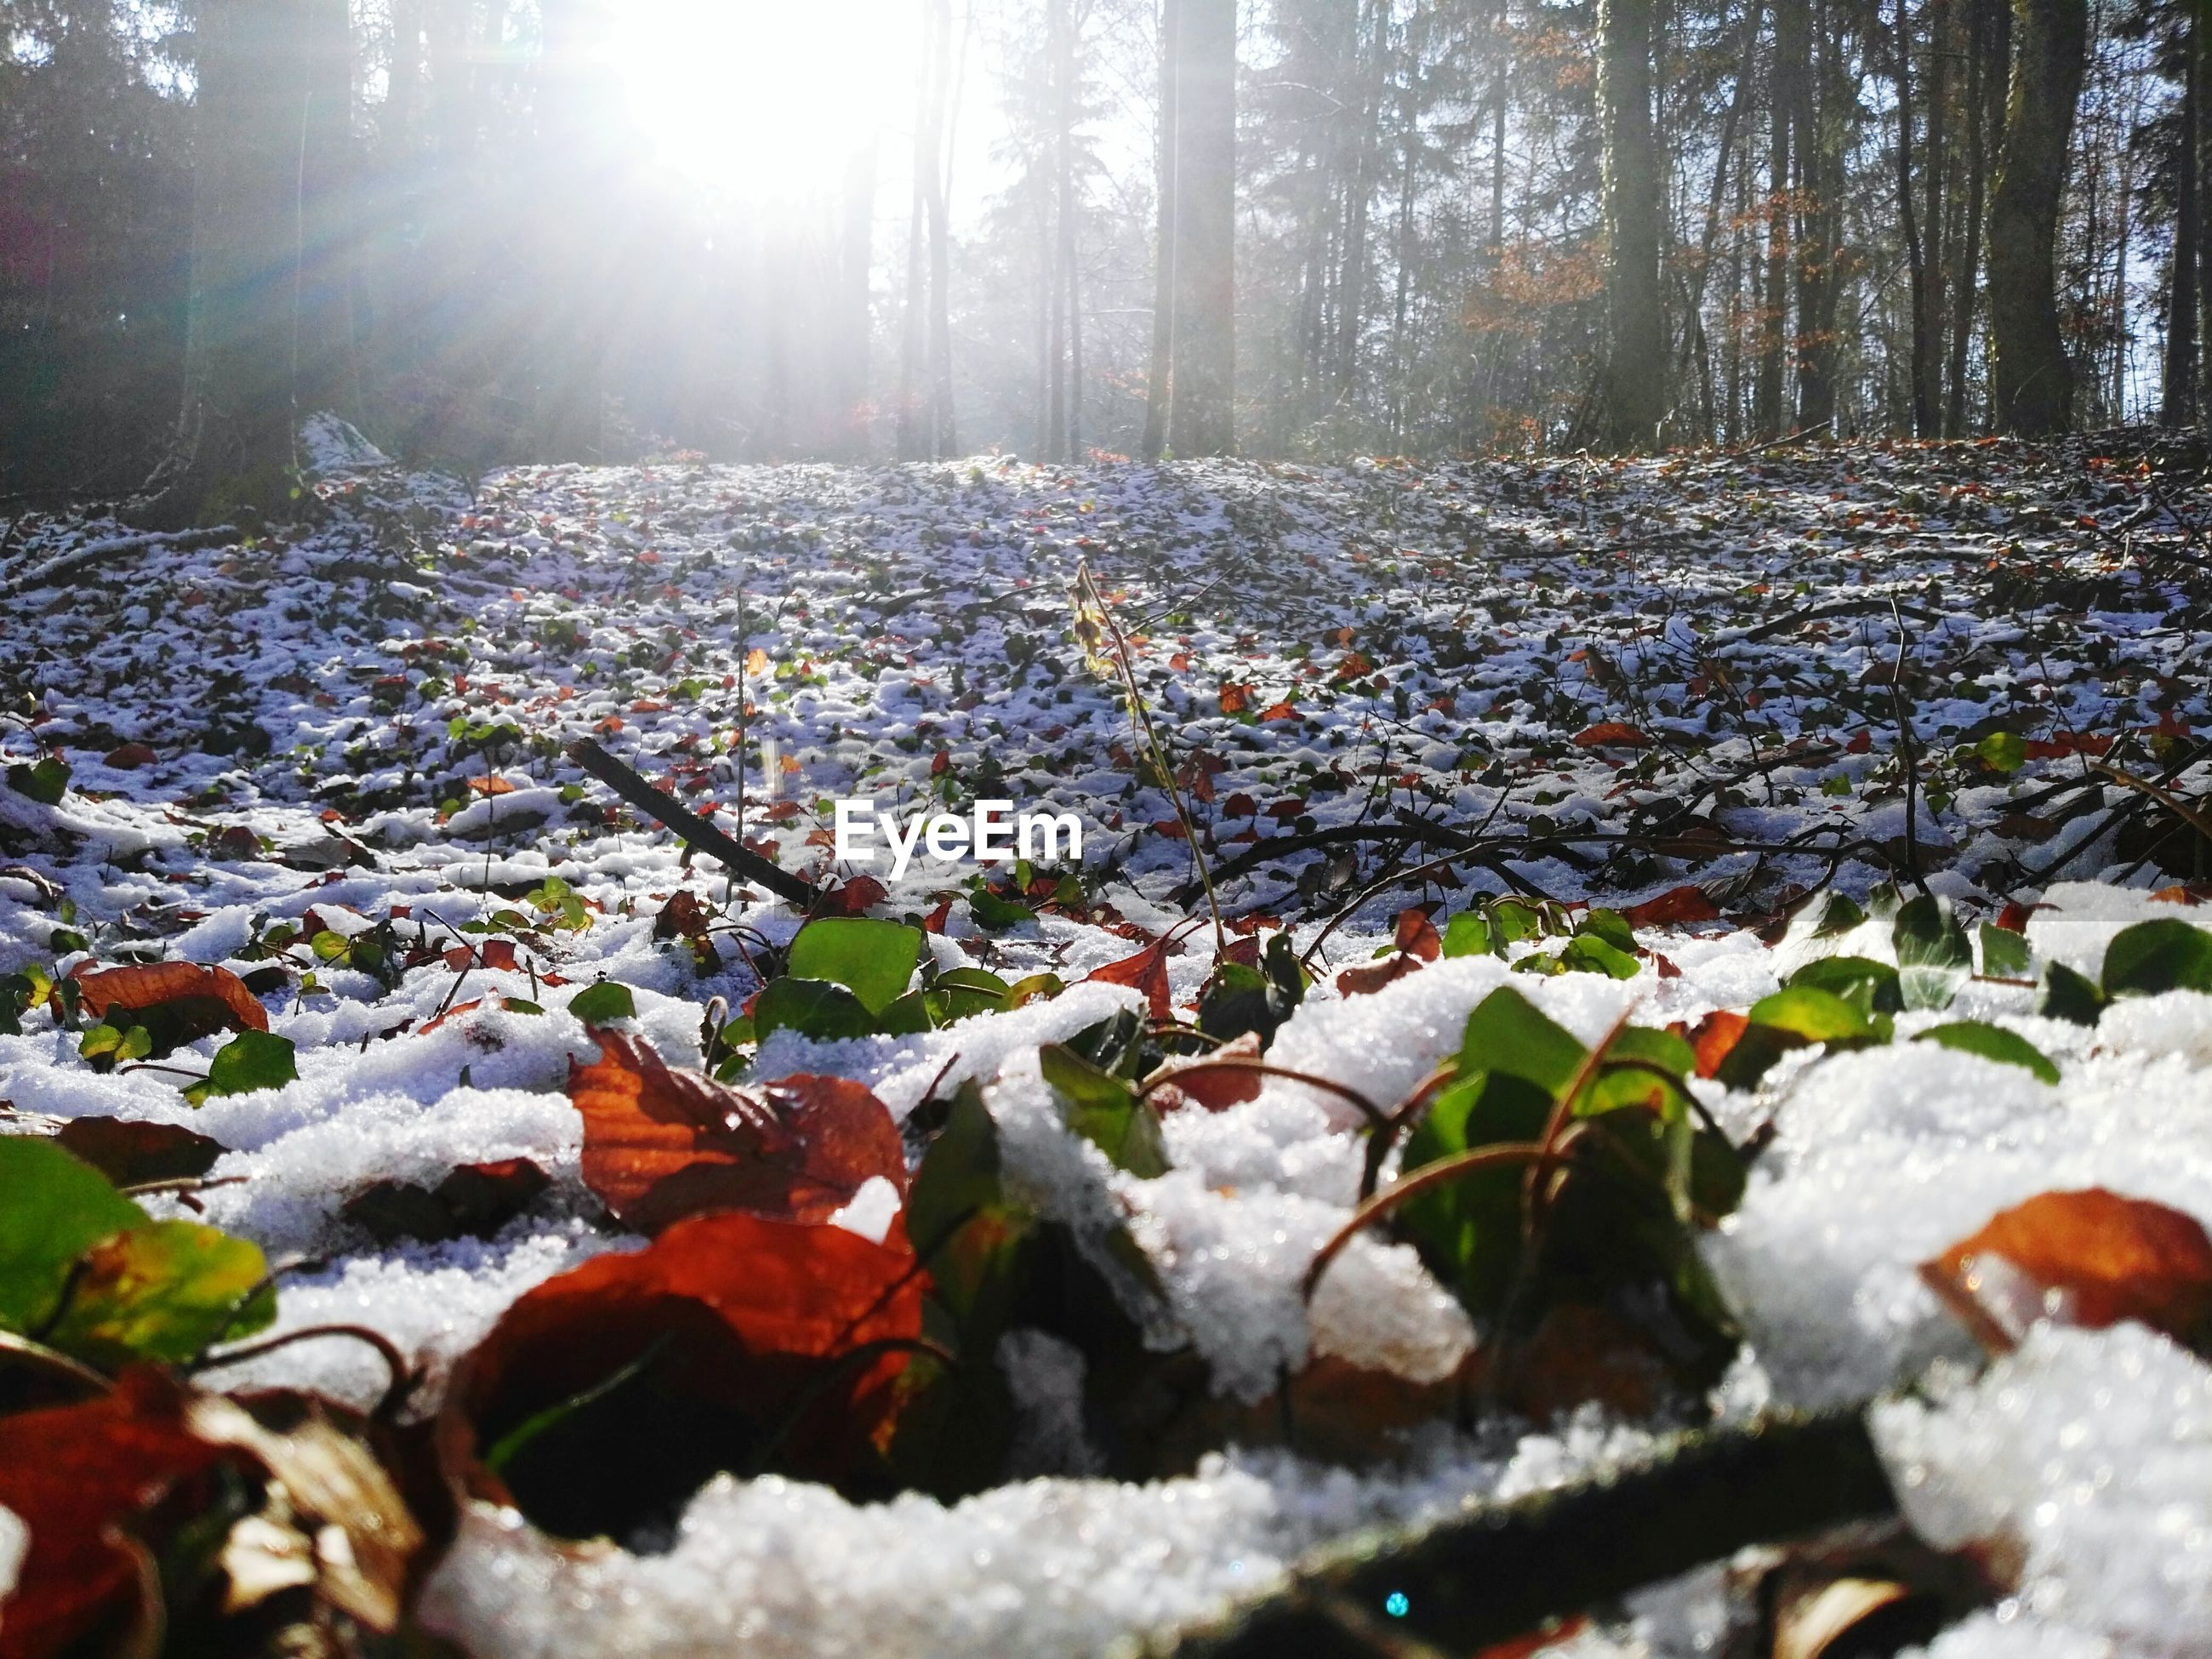 nature, leaf, tranquility, day, sunlight, beauty in nature, winter, tree, forest, outdoors, no people, cold temperature, growth, autumn, tree trunk, scenics